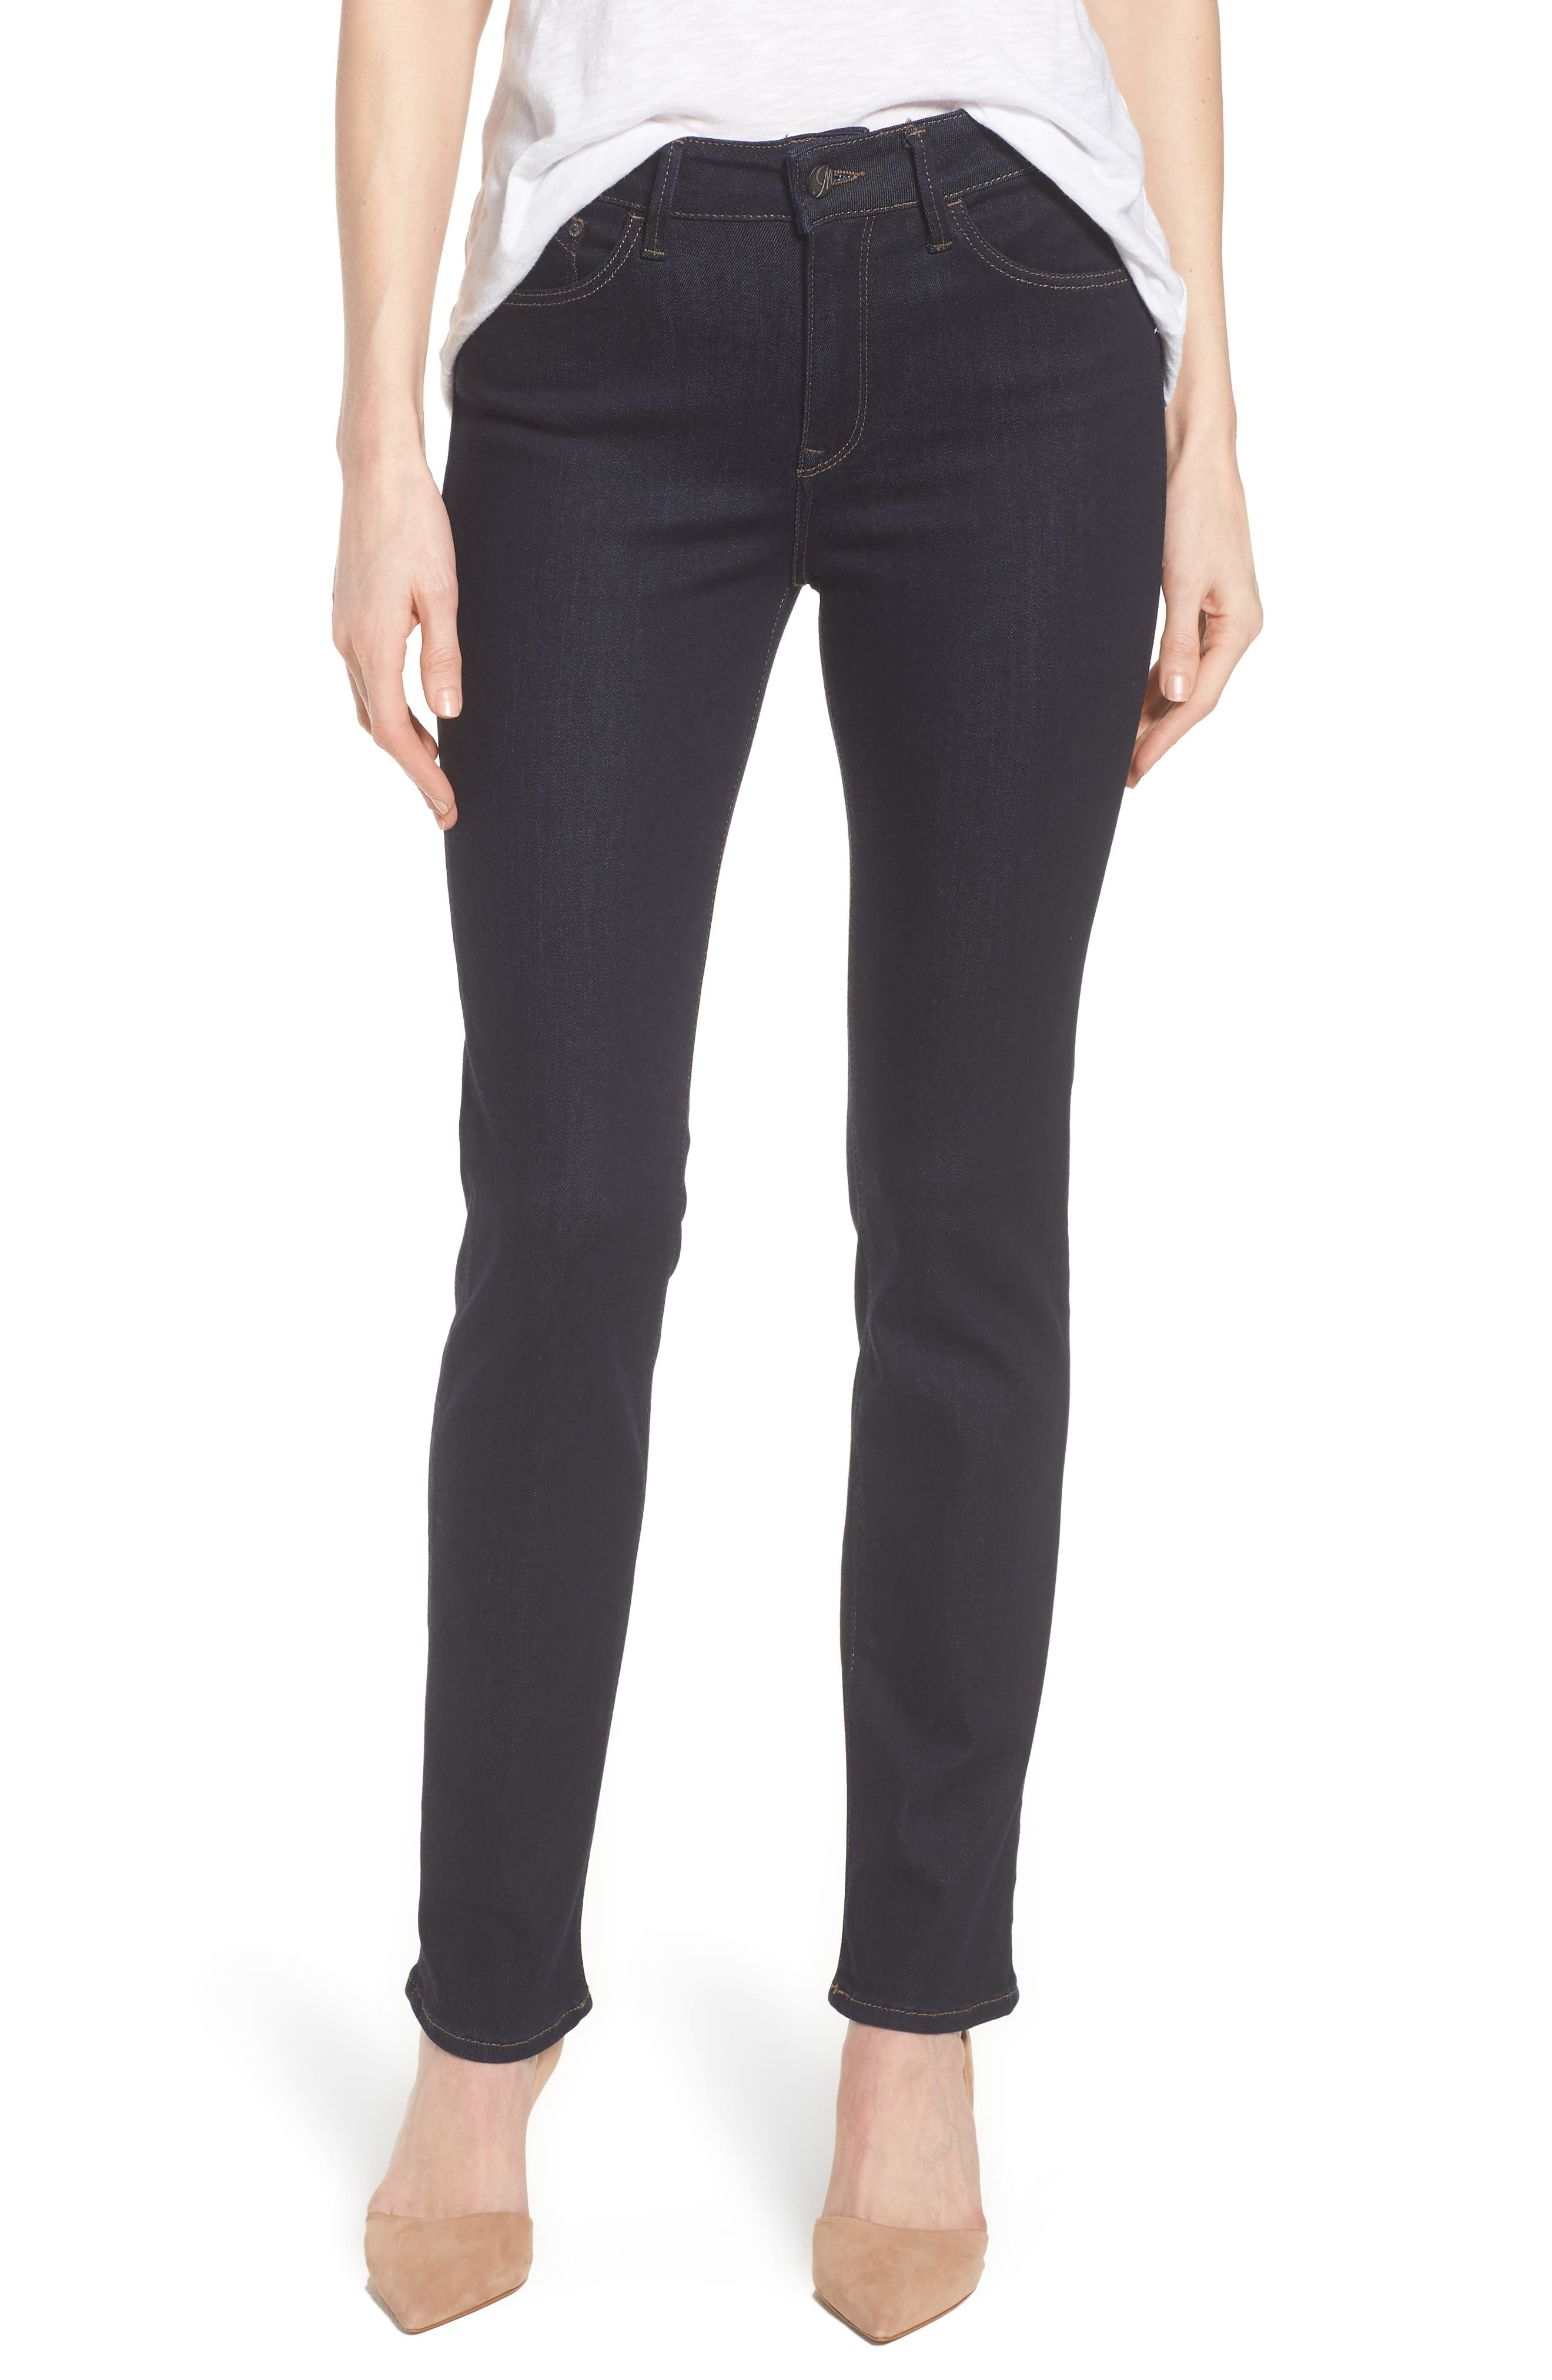 Kendra Supersoft Straight Leg Jeans,                             Main thumbnail 1, color,                             Rinse Super Soft